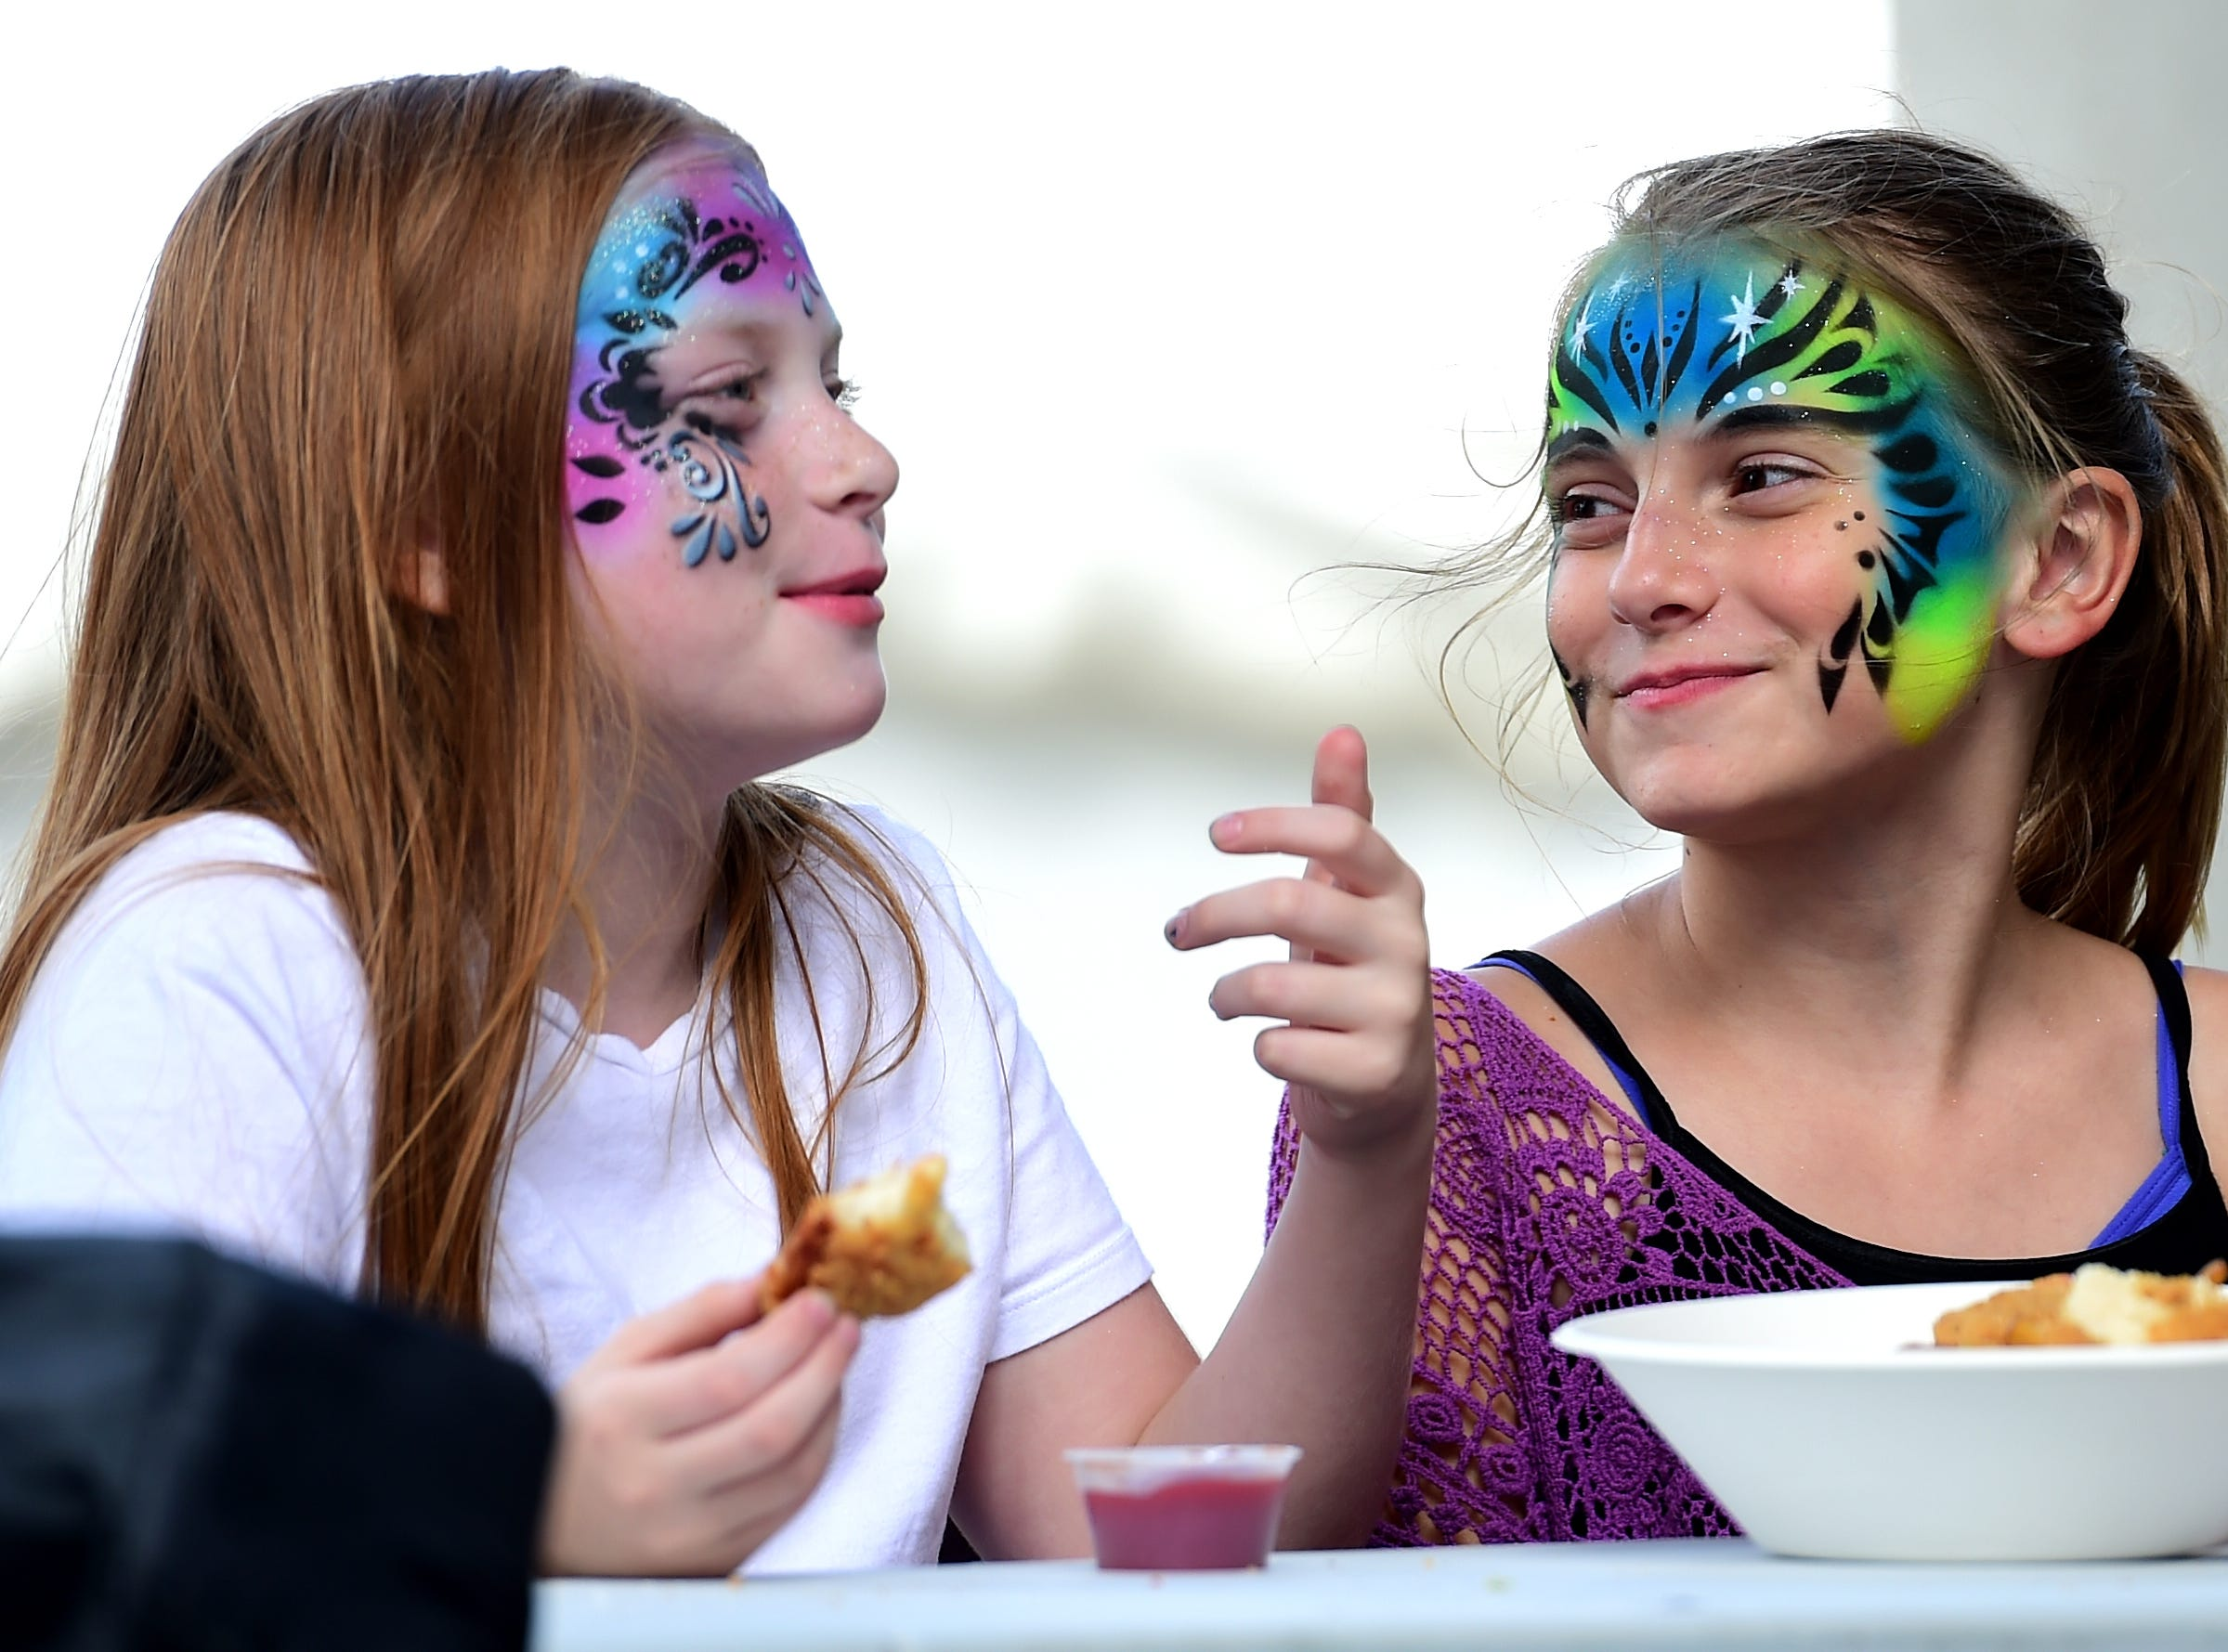 Stevie Tomas and Samantha Sloan of Liverpool eat during the Great New York State Fair. The Fair continues through Labor Day at the Fairgrounds near Syracuse, NY. August 30, 2018.